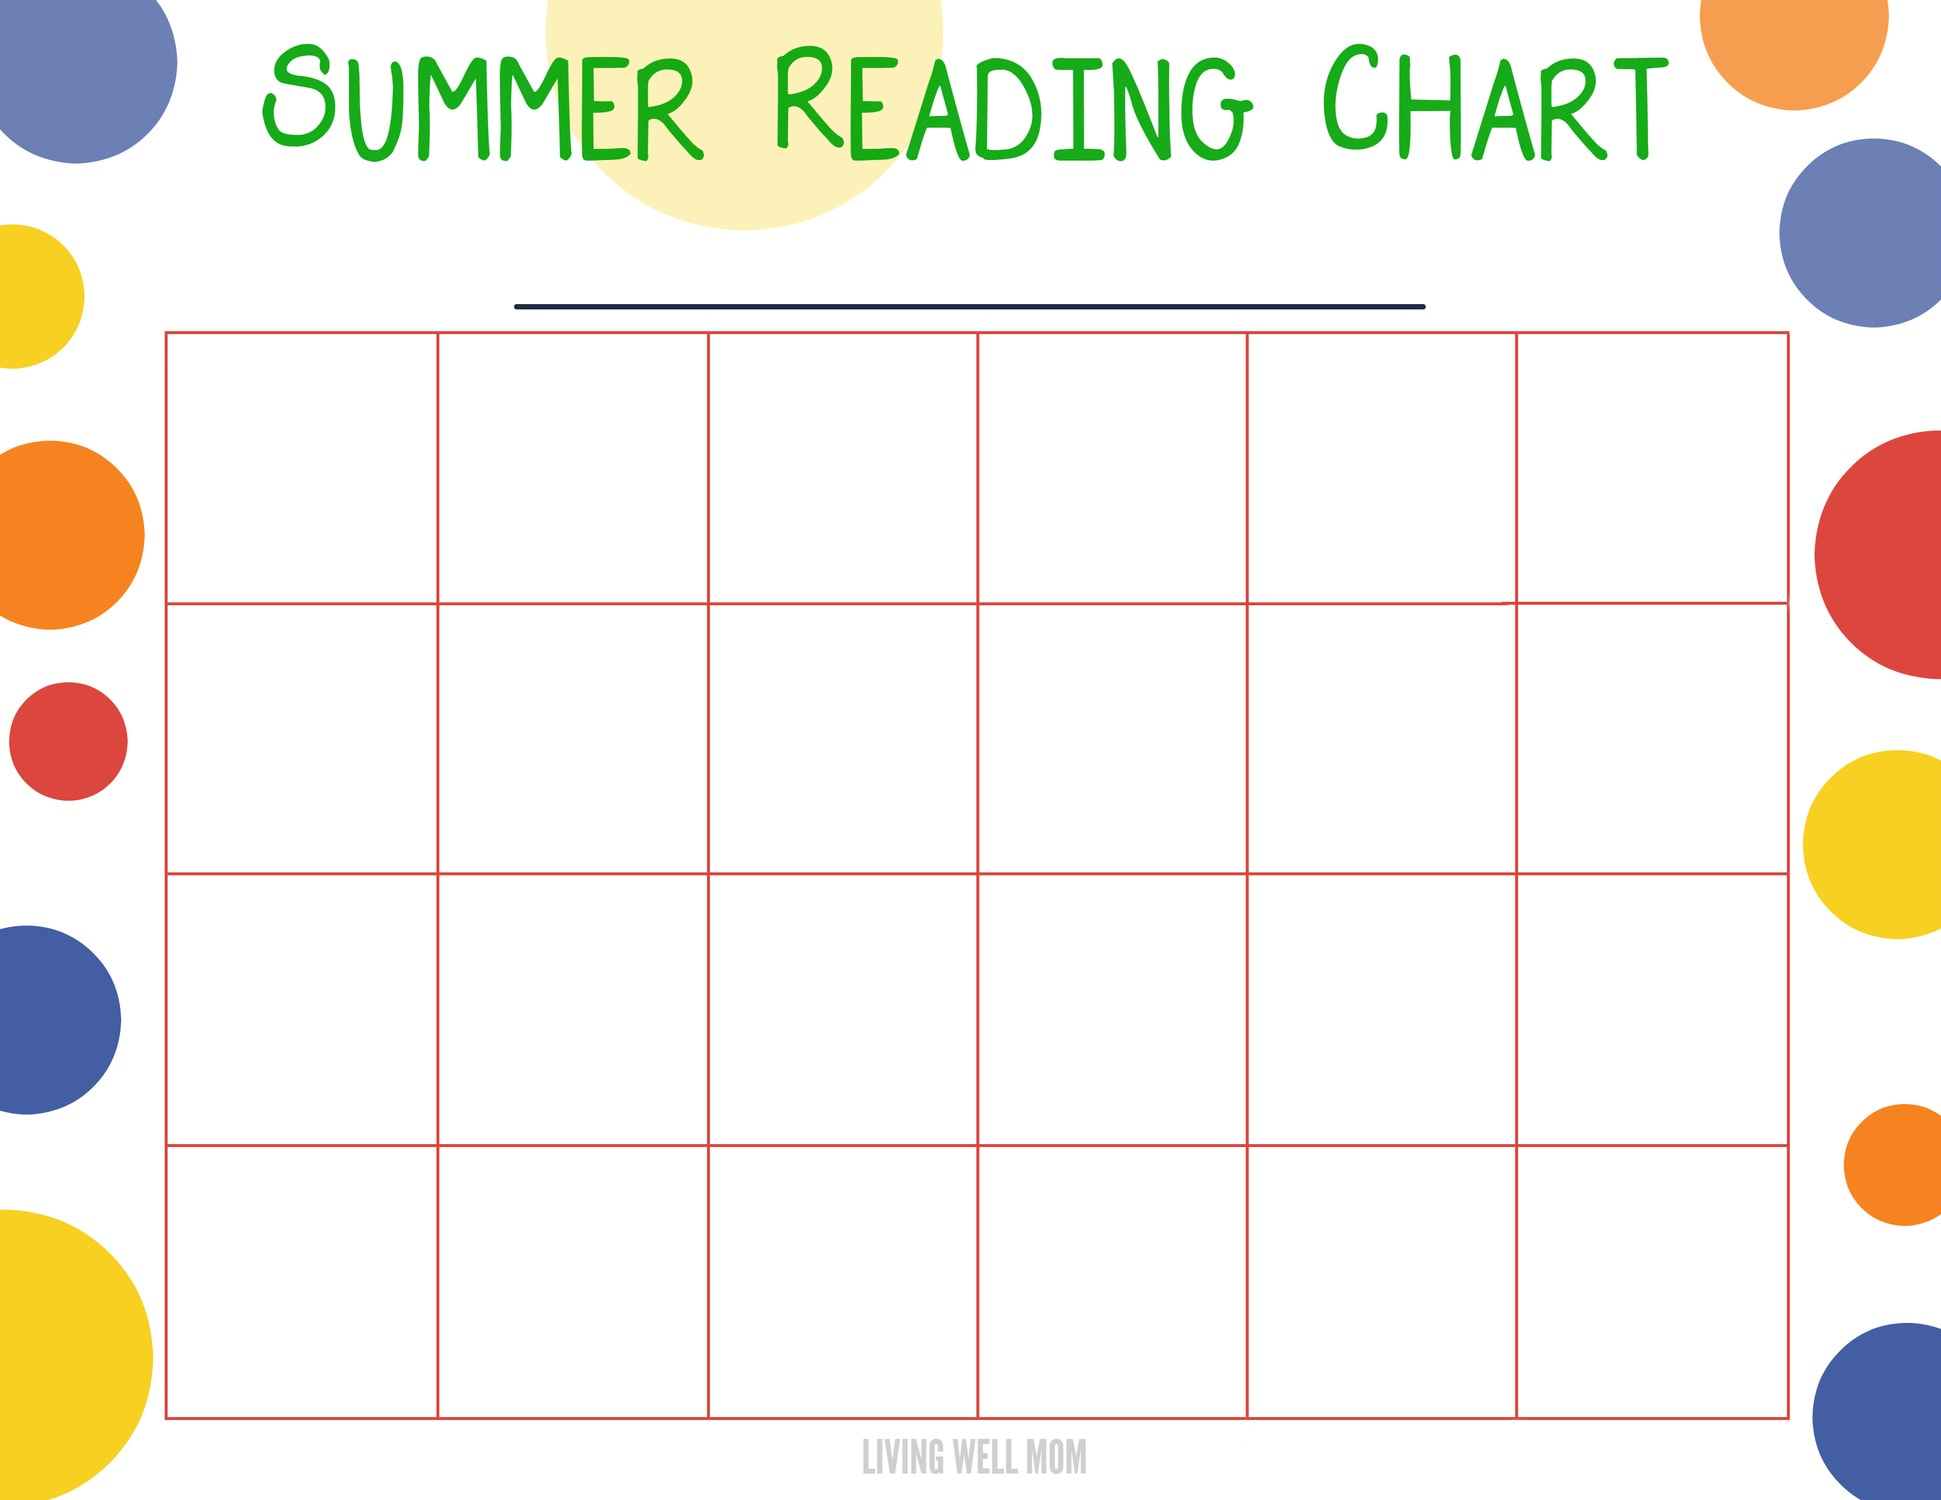 Want to get your kids reading this summer? Here's an easy DIY summer reading program for kids, plus a free printable chart! Find out how to customize it for your own children and they'll be begging you for books to read!